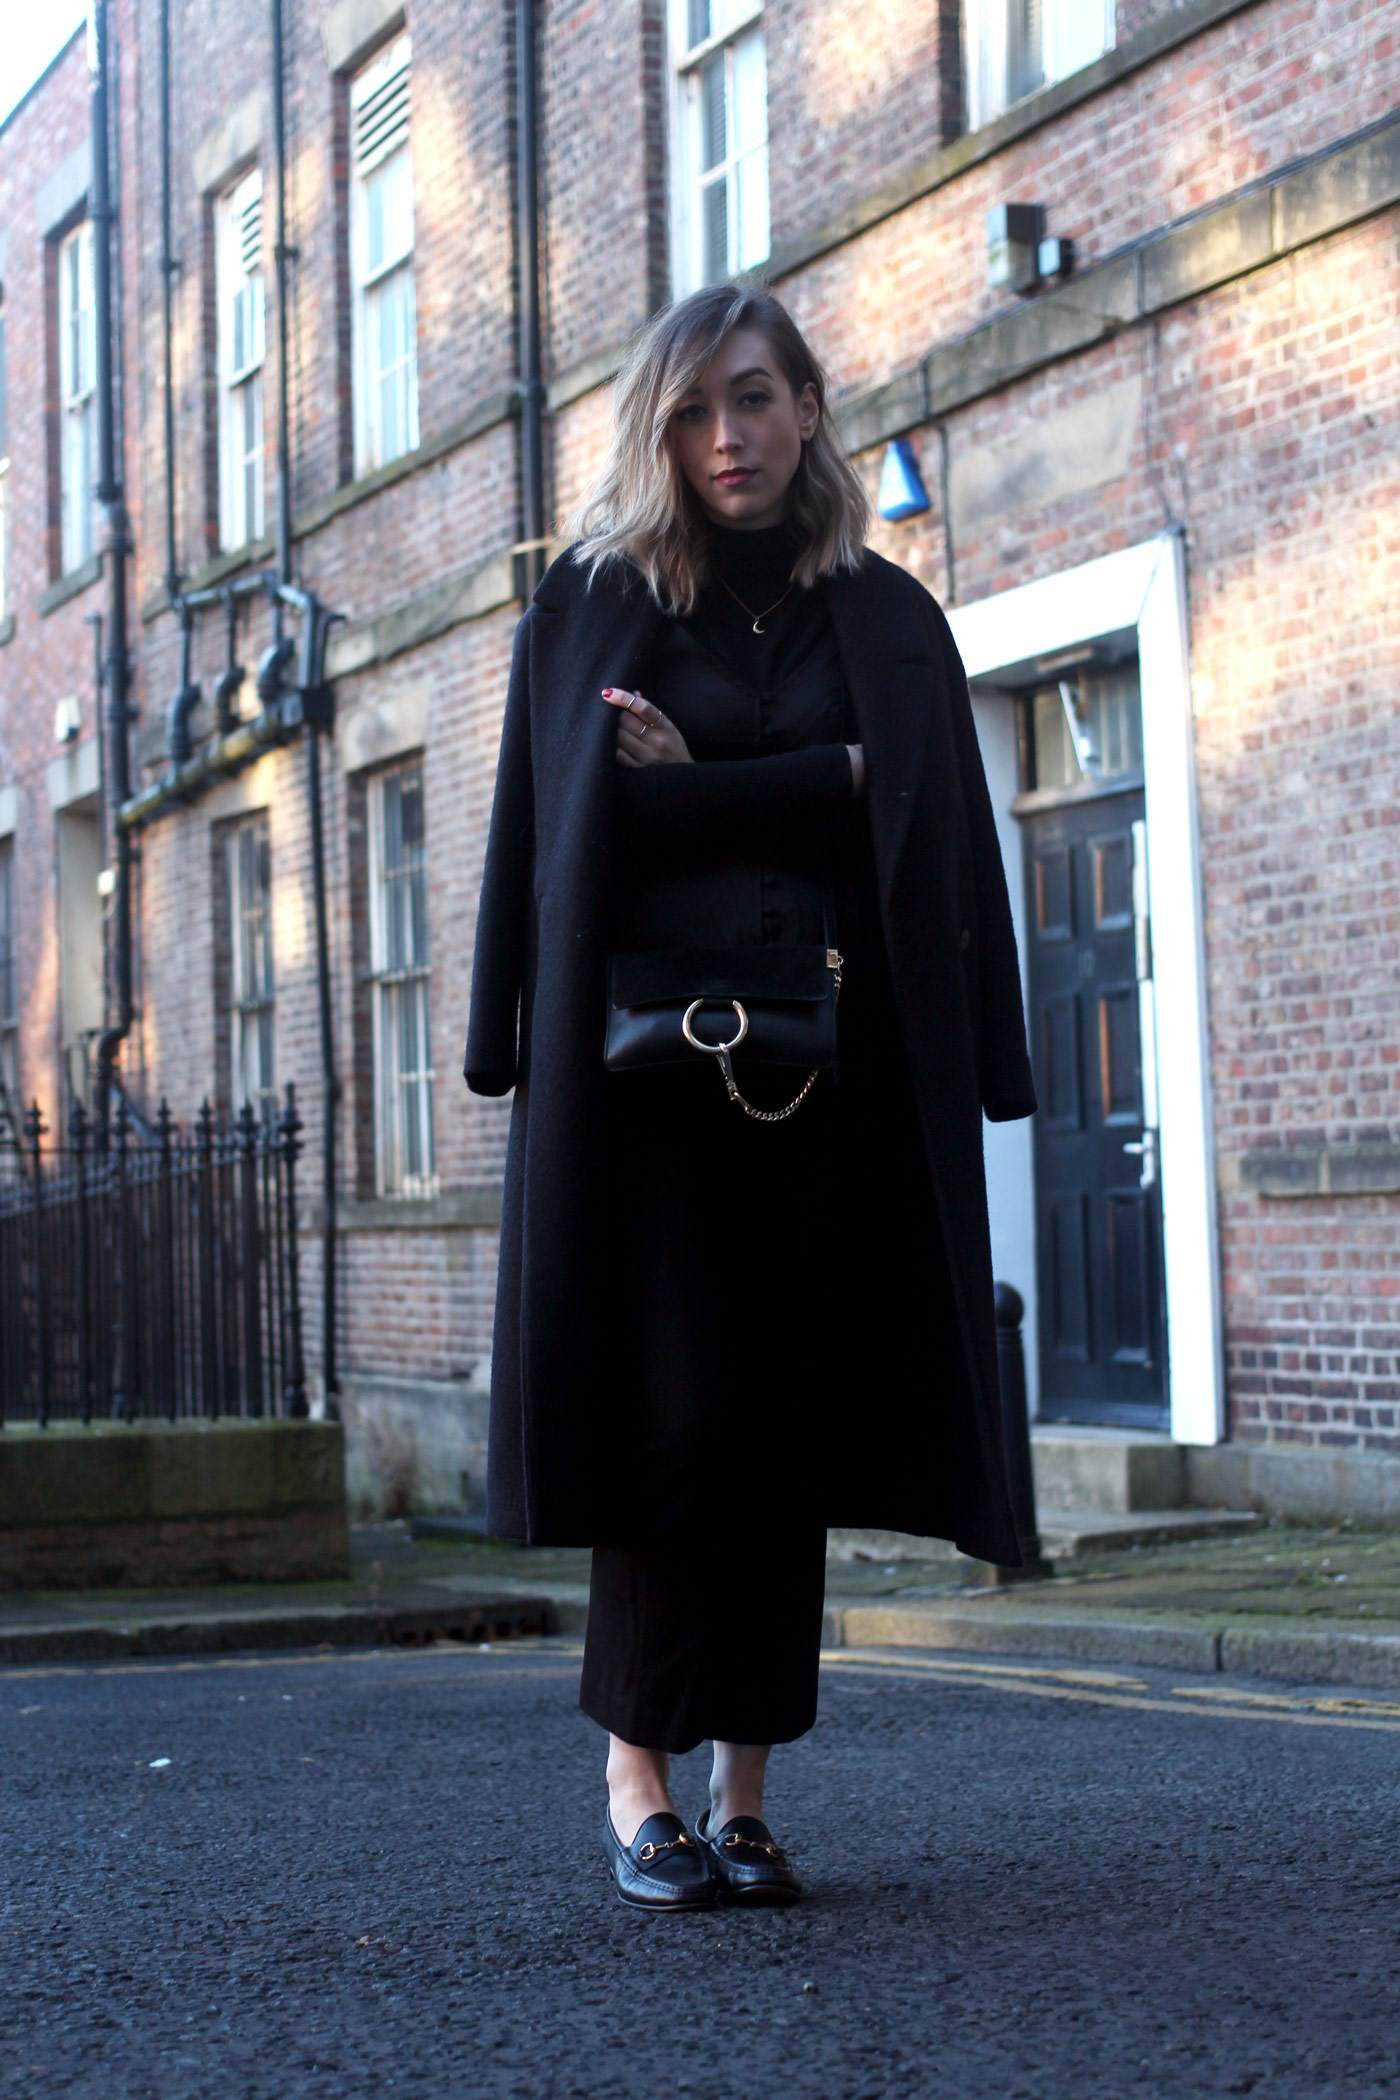 all-black-winter-look-nobodys-child-button-up-cami-gucci-loafers-chloe-faye-1jpg